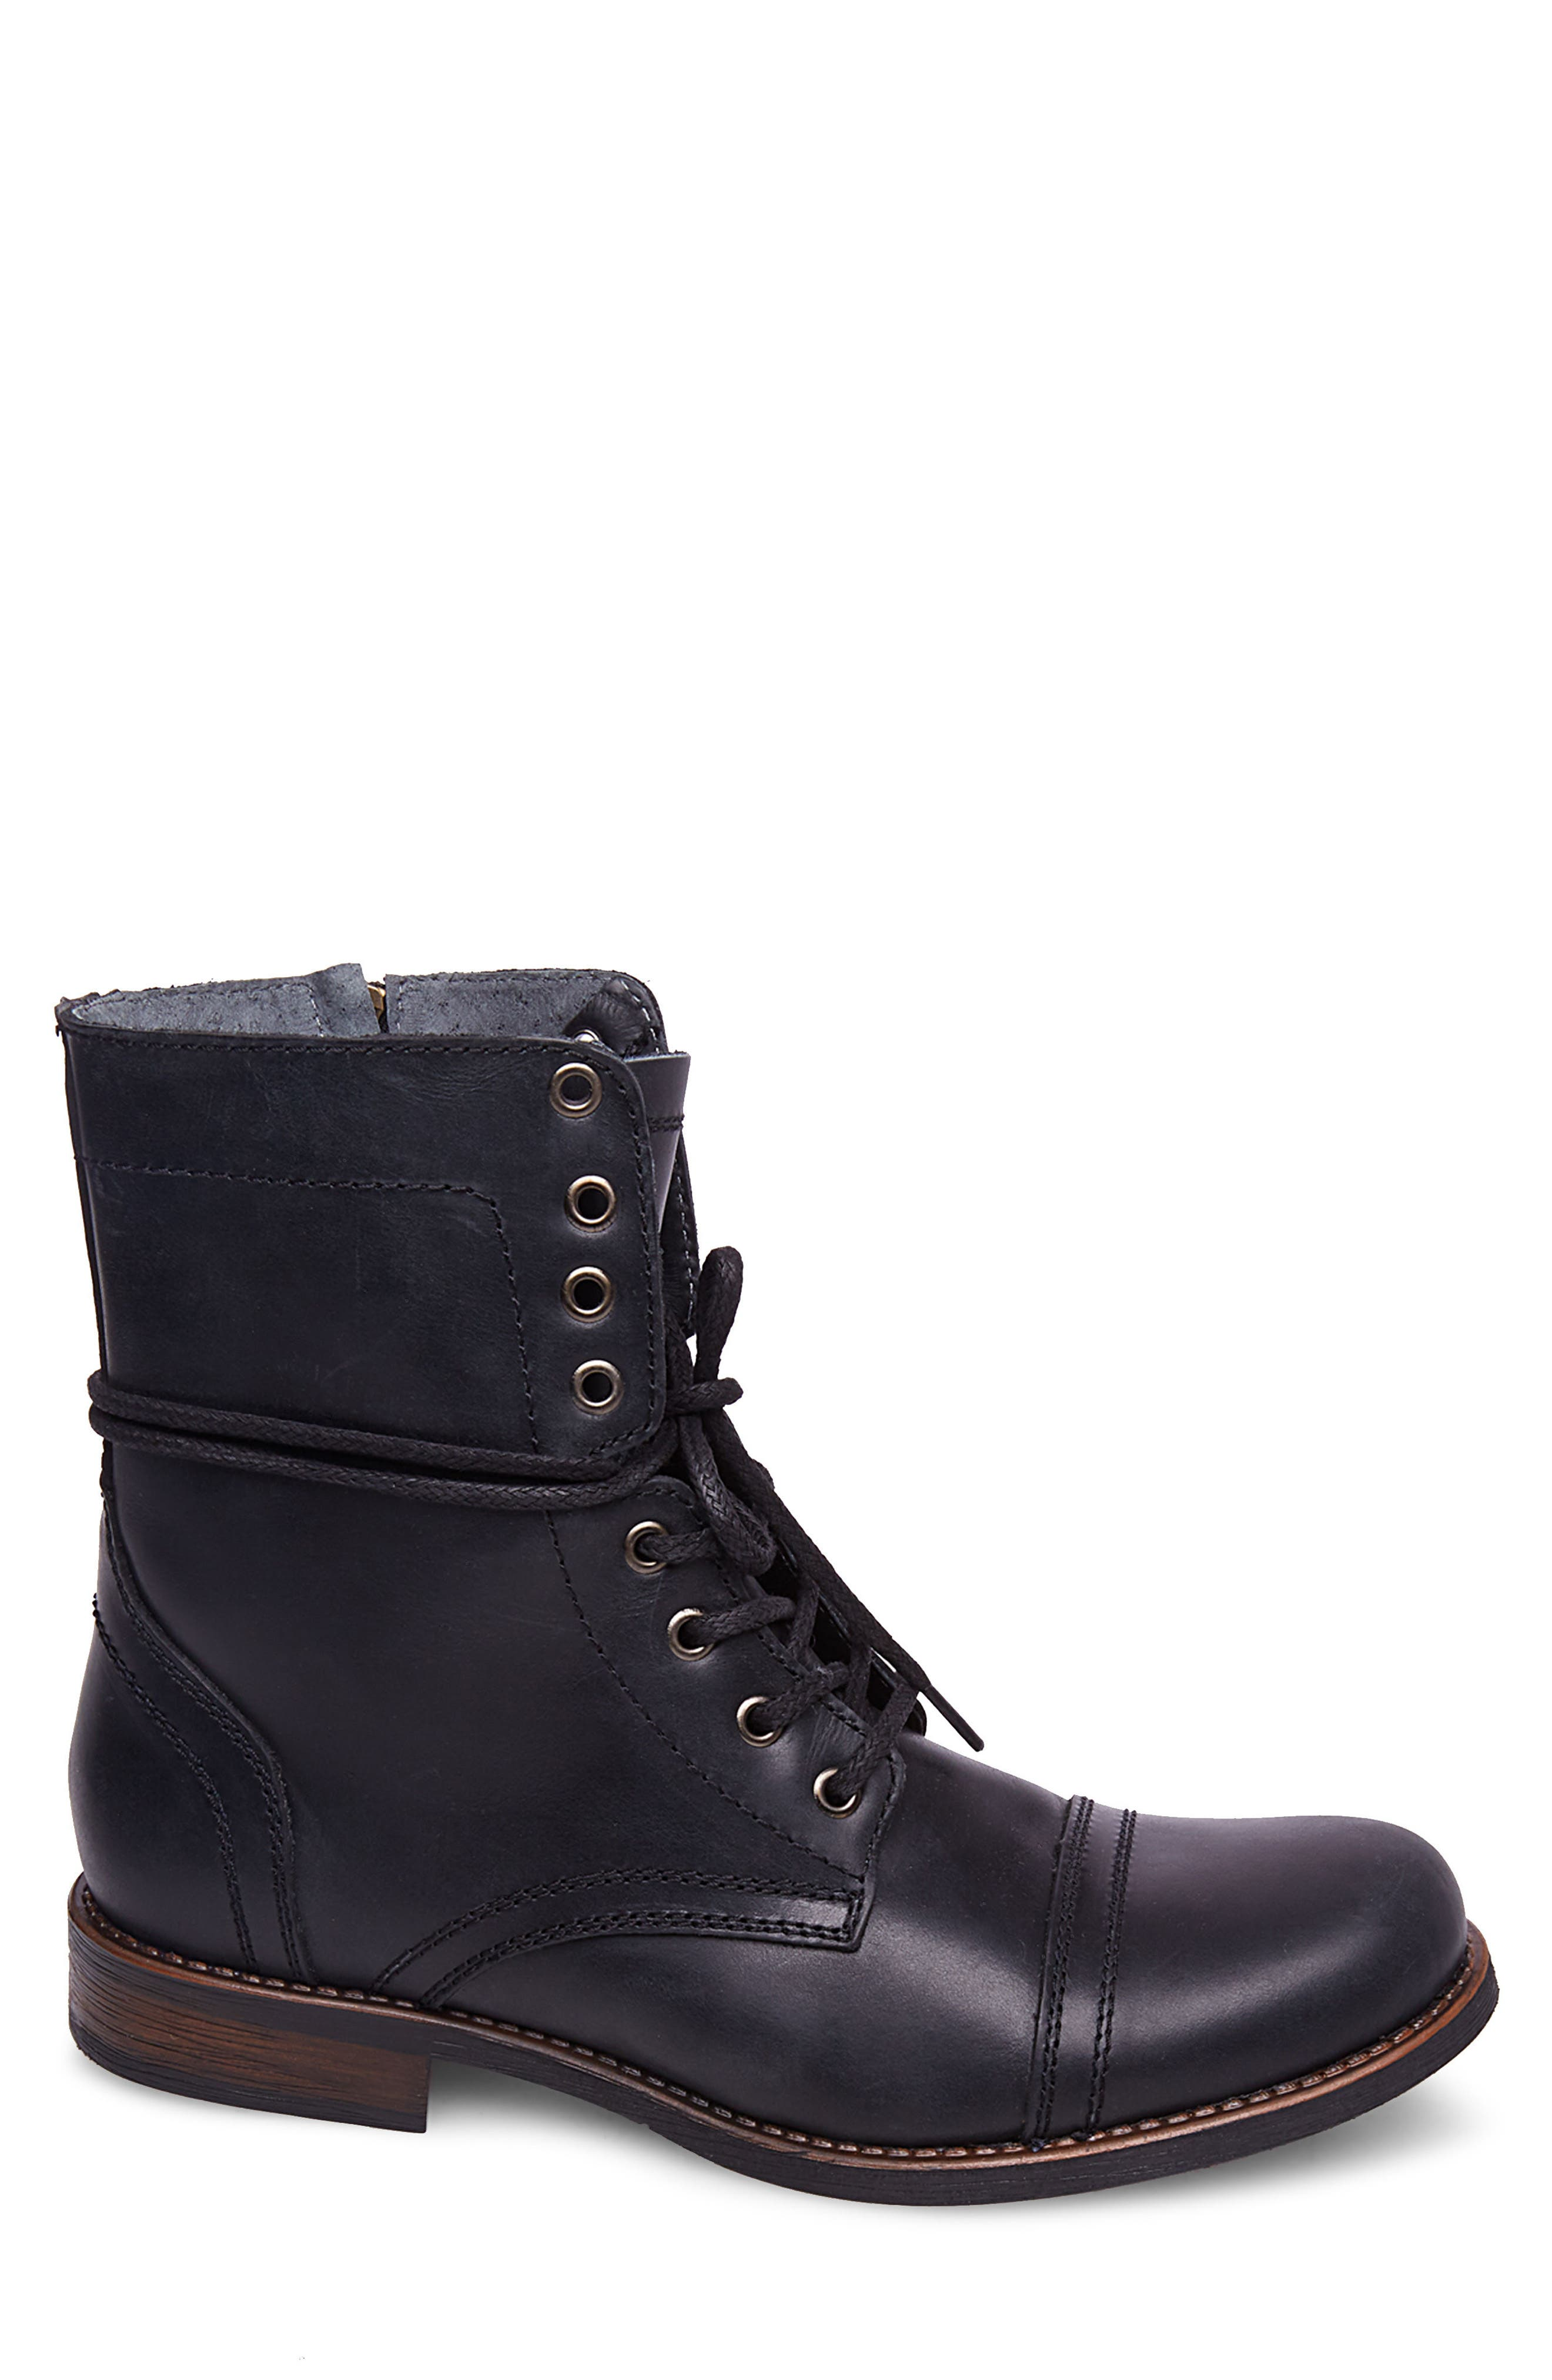 Troopah-C Cap Toe Boot,                             Alternate thumbnail 3, color,                             BLACK LEATHER